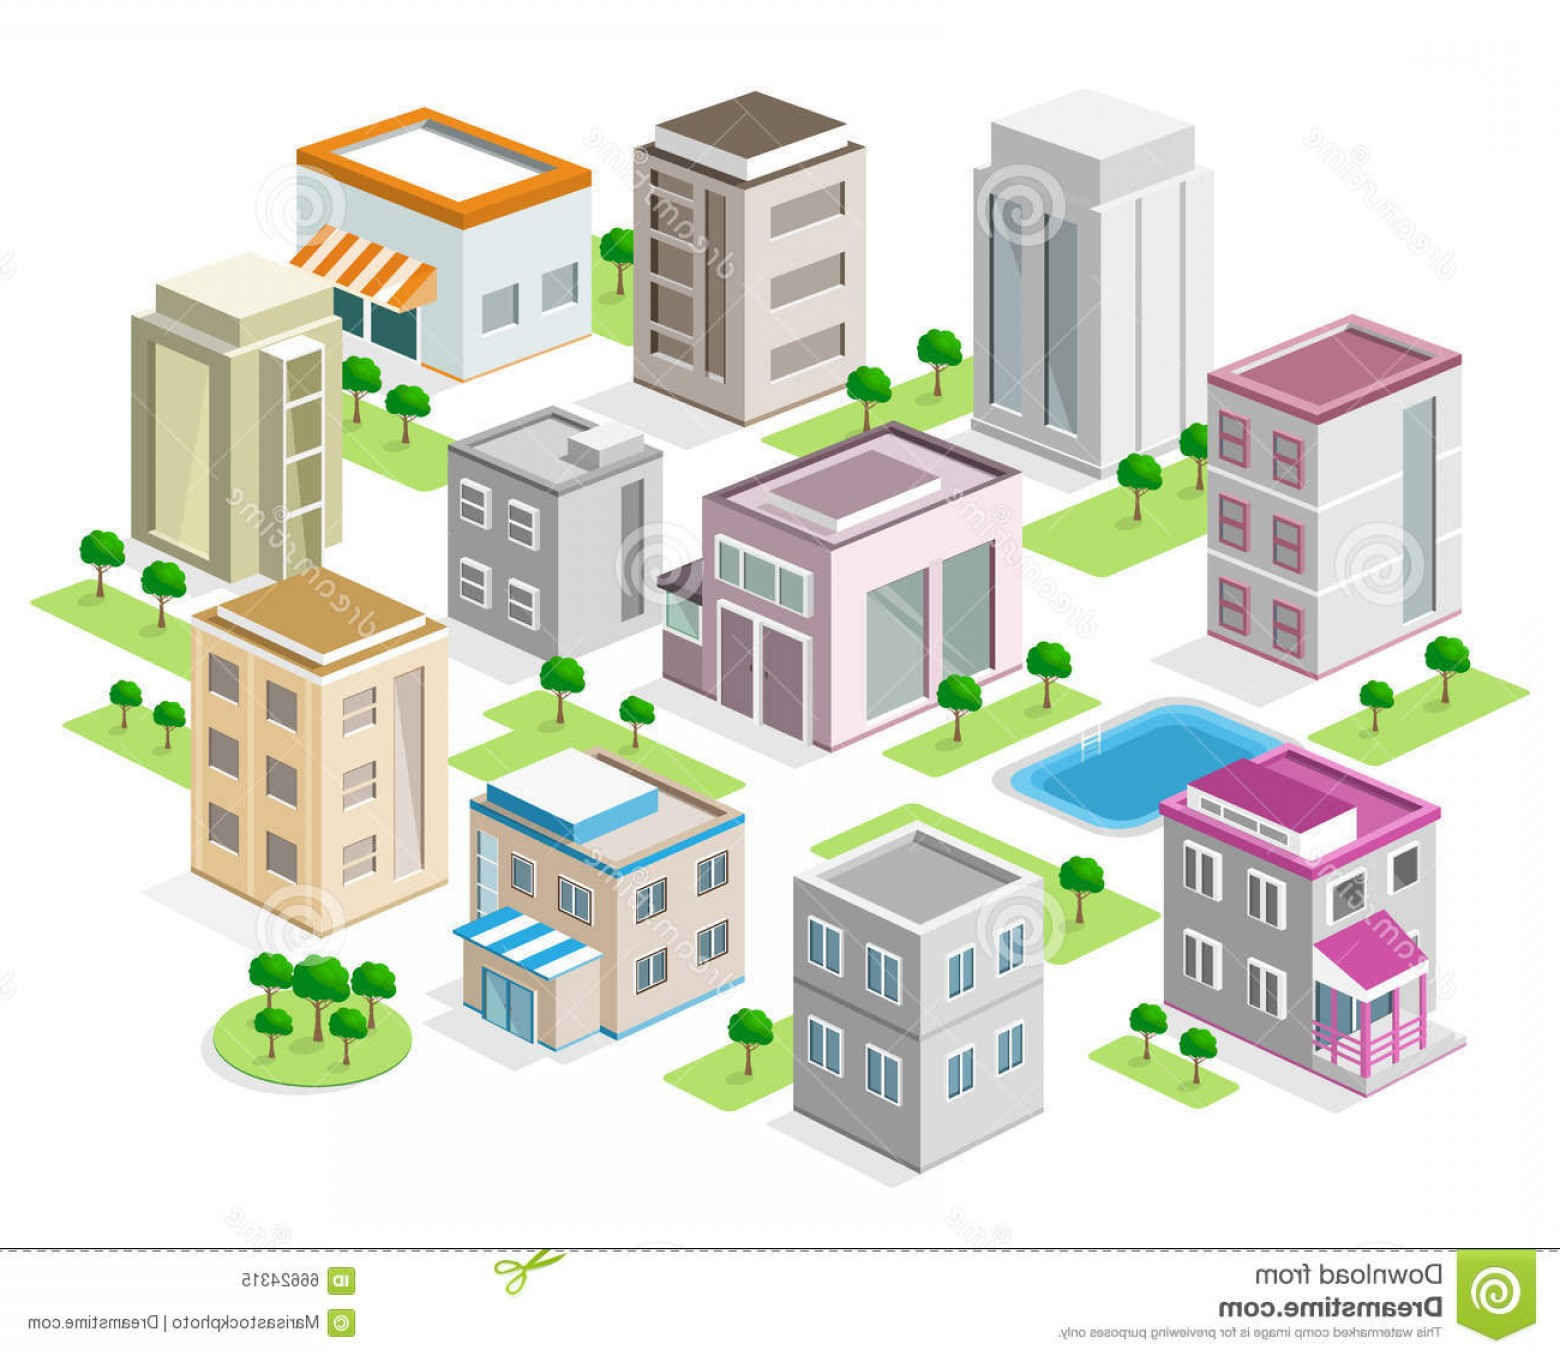 City Building Vector Free Download: Stock Illustration Set Detailed Isometric City Buildings D Vector Isometric City Illustration Image